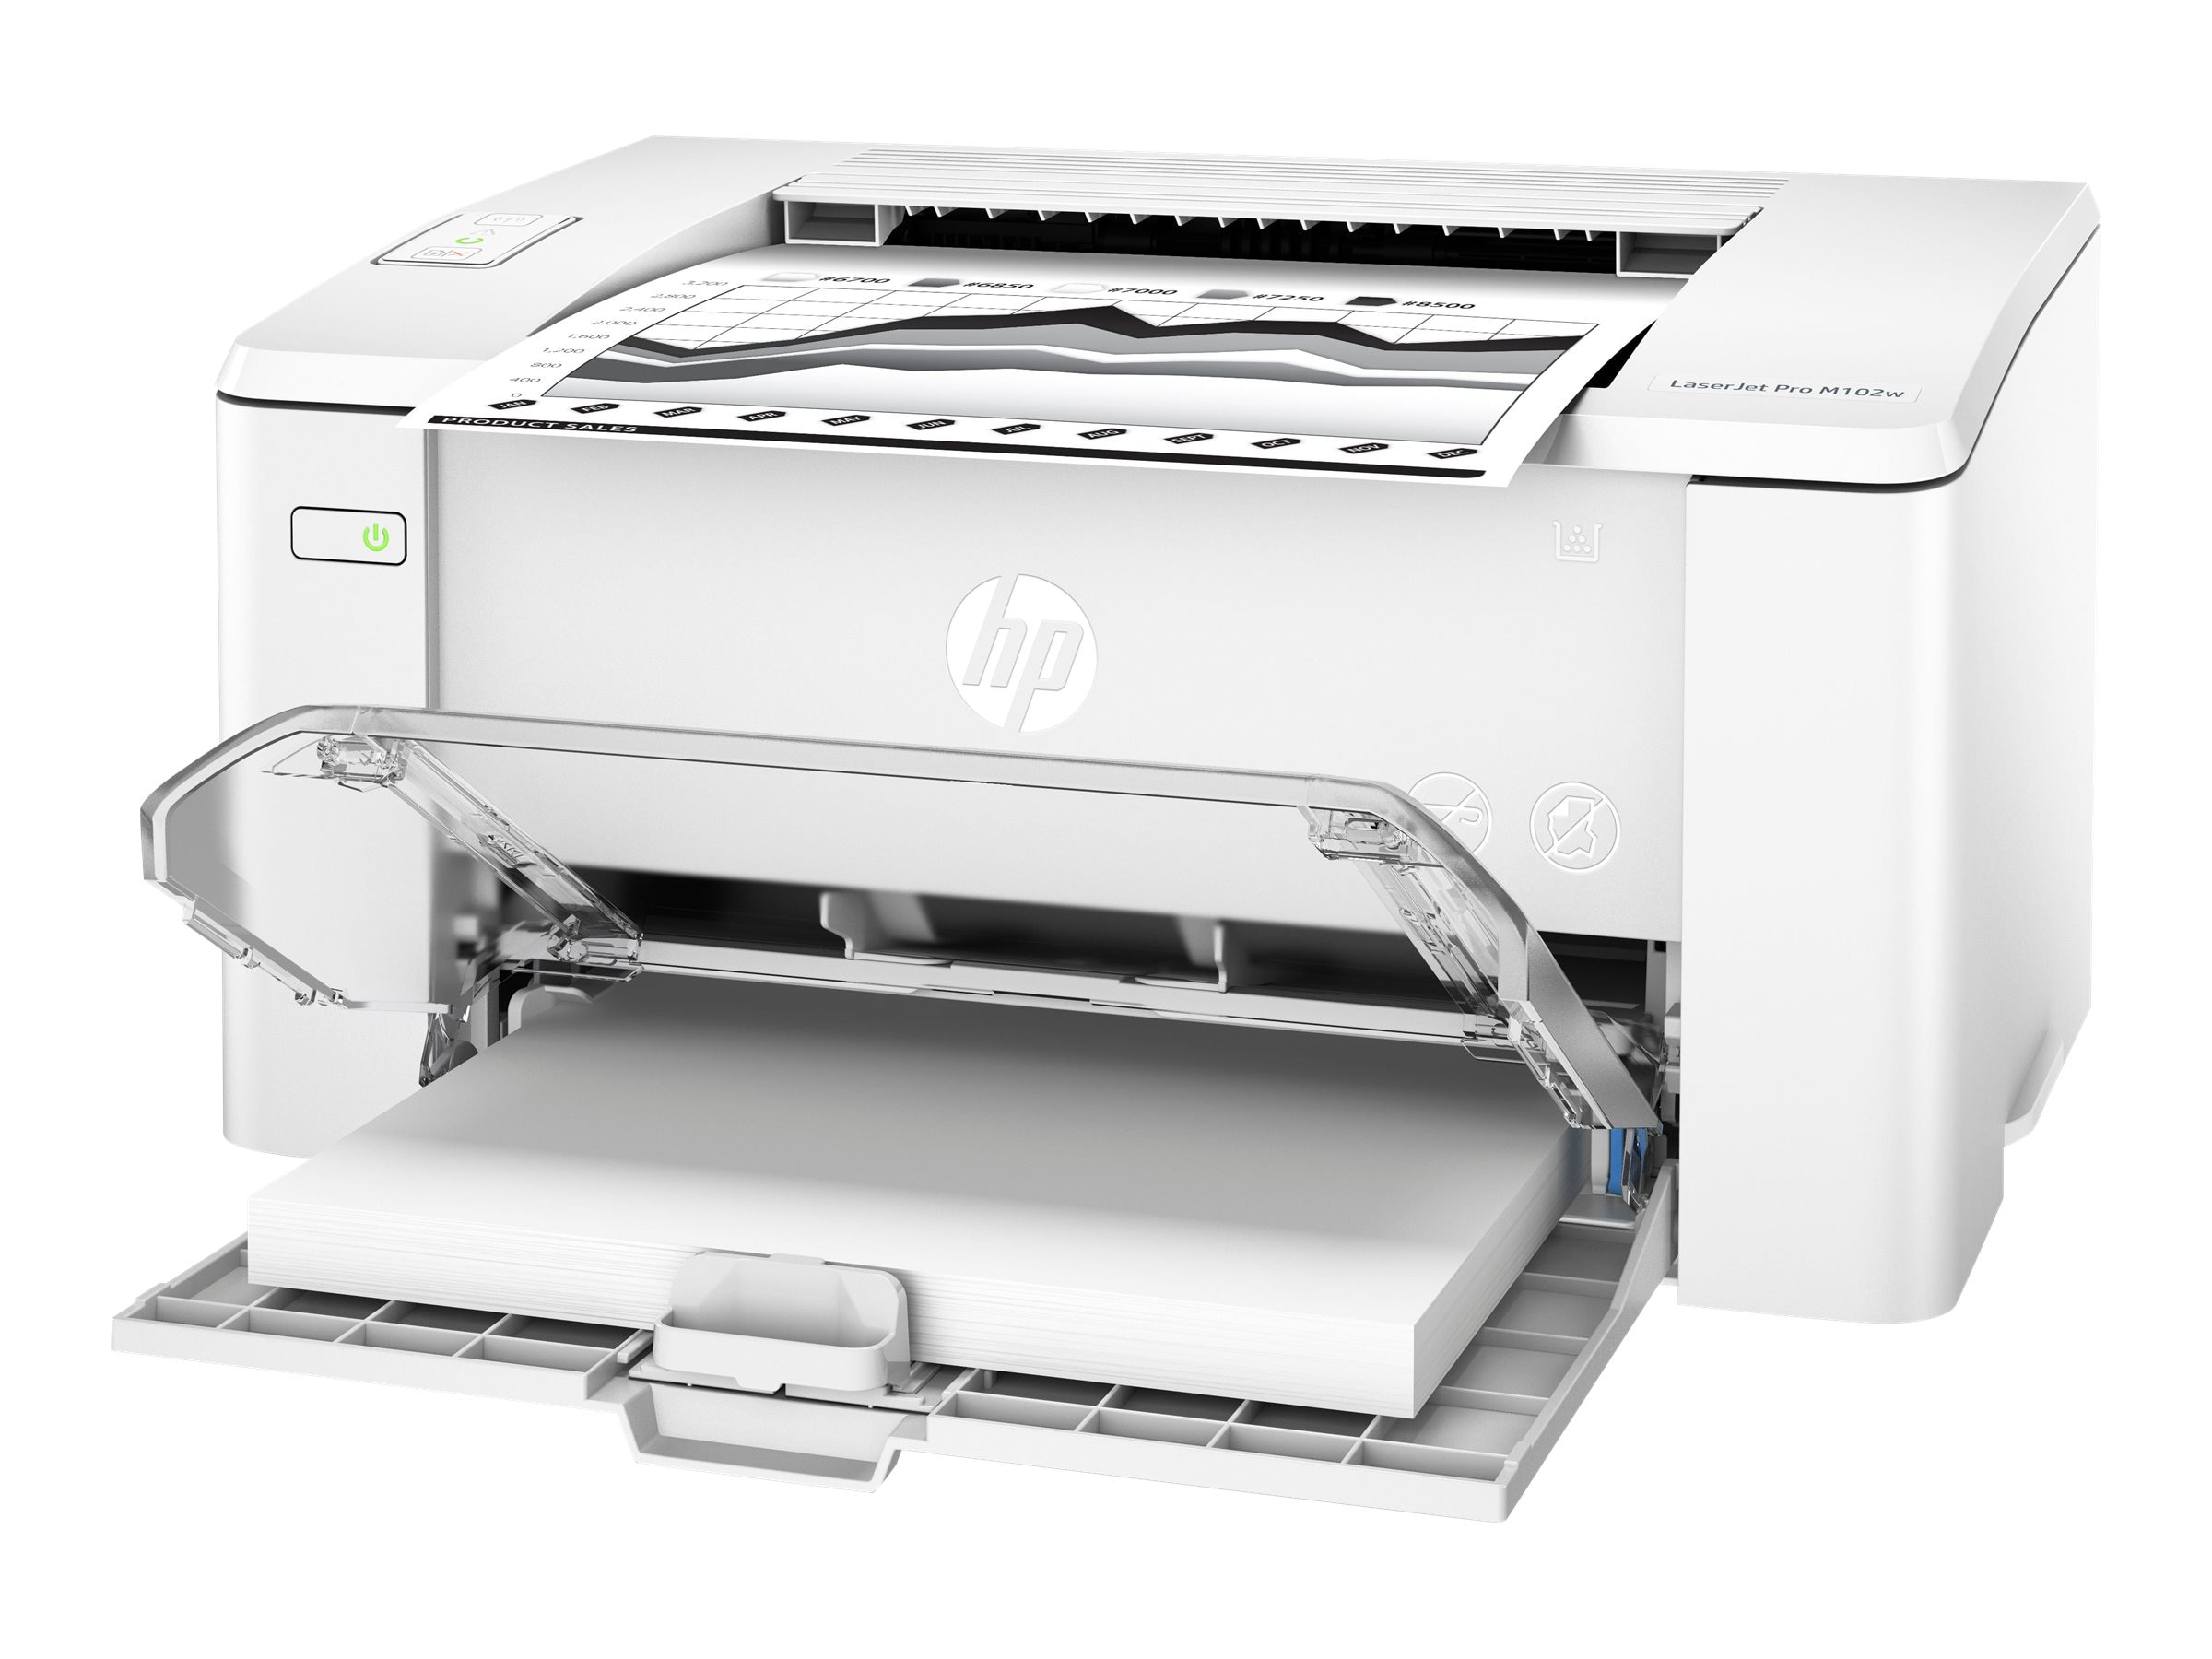 HP LaserJet Pro M102w Printer ($119 00 - $20 00 Instant Rebate